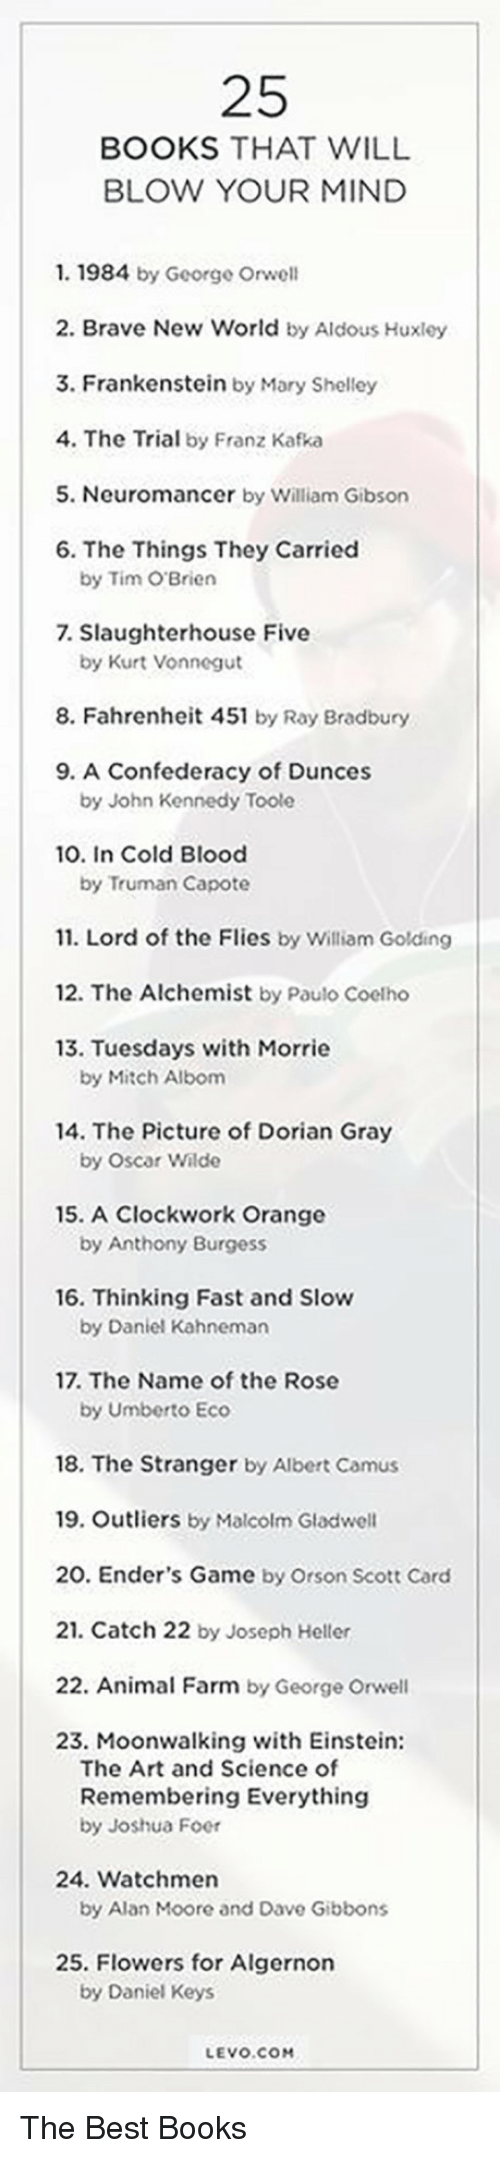 Books, Animal, and Best: 25  BOOKS THAT WILL  BLOW YOUR MIND  1. 1984 by George Orwell  2. Brave New World by Aldous Huxley  3. Frankenstein by Mary Shelley  4. The Trial by Franz Kafka  5. Neuromancer by William Gibson  6. The Things They Carried  by Tim O'Brien  7. Slaughterhouse Five  by Kurt Vonnegut  8. Fahrenheit 451 by Ray Bradbury  9. A Confederacy of Dunces  by John Kennedy Toole  0. In Cold Blood  by Truman Capote  11. Lord of the Flies by William Golding  12. The Alchemist by Paulo Coelho  13. Tuesdays with Morrie  by Mitch Albom  14. The Picture of Dorian Gray  by Oscar Wilde  15. A Clockwork Orange  by Anthony Burgess  16. Thinking Fast and Slow  by Daniel Kahneman  17. The Name of the Rose  by Umberto Eco  18. The Stranger by Albert Camus  19. Outliers by Malcolm Gladwell  20. Ender's Game by Orson Scott Card  21. Catch 22 by Joseph Heller  22. Animal Farm by George Orwell  23. Moonwalking with Einstein:  The Art and Science of  Remembering Everything  by Joshua Foer  24. Watchmen  by Alan Moore and Dave Gibbons  25. Flowers for Algernon  by Daniel Keys  LEVO.COM <p>The Best Books</p>